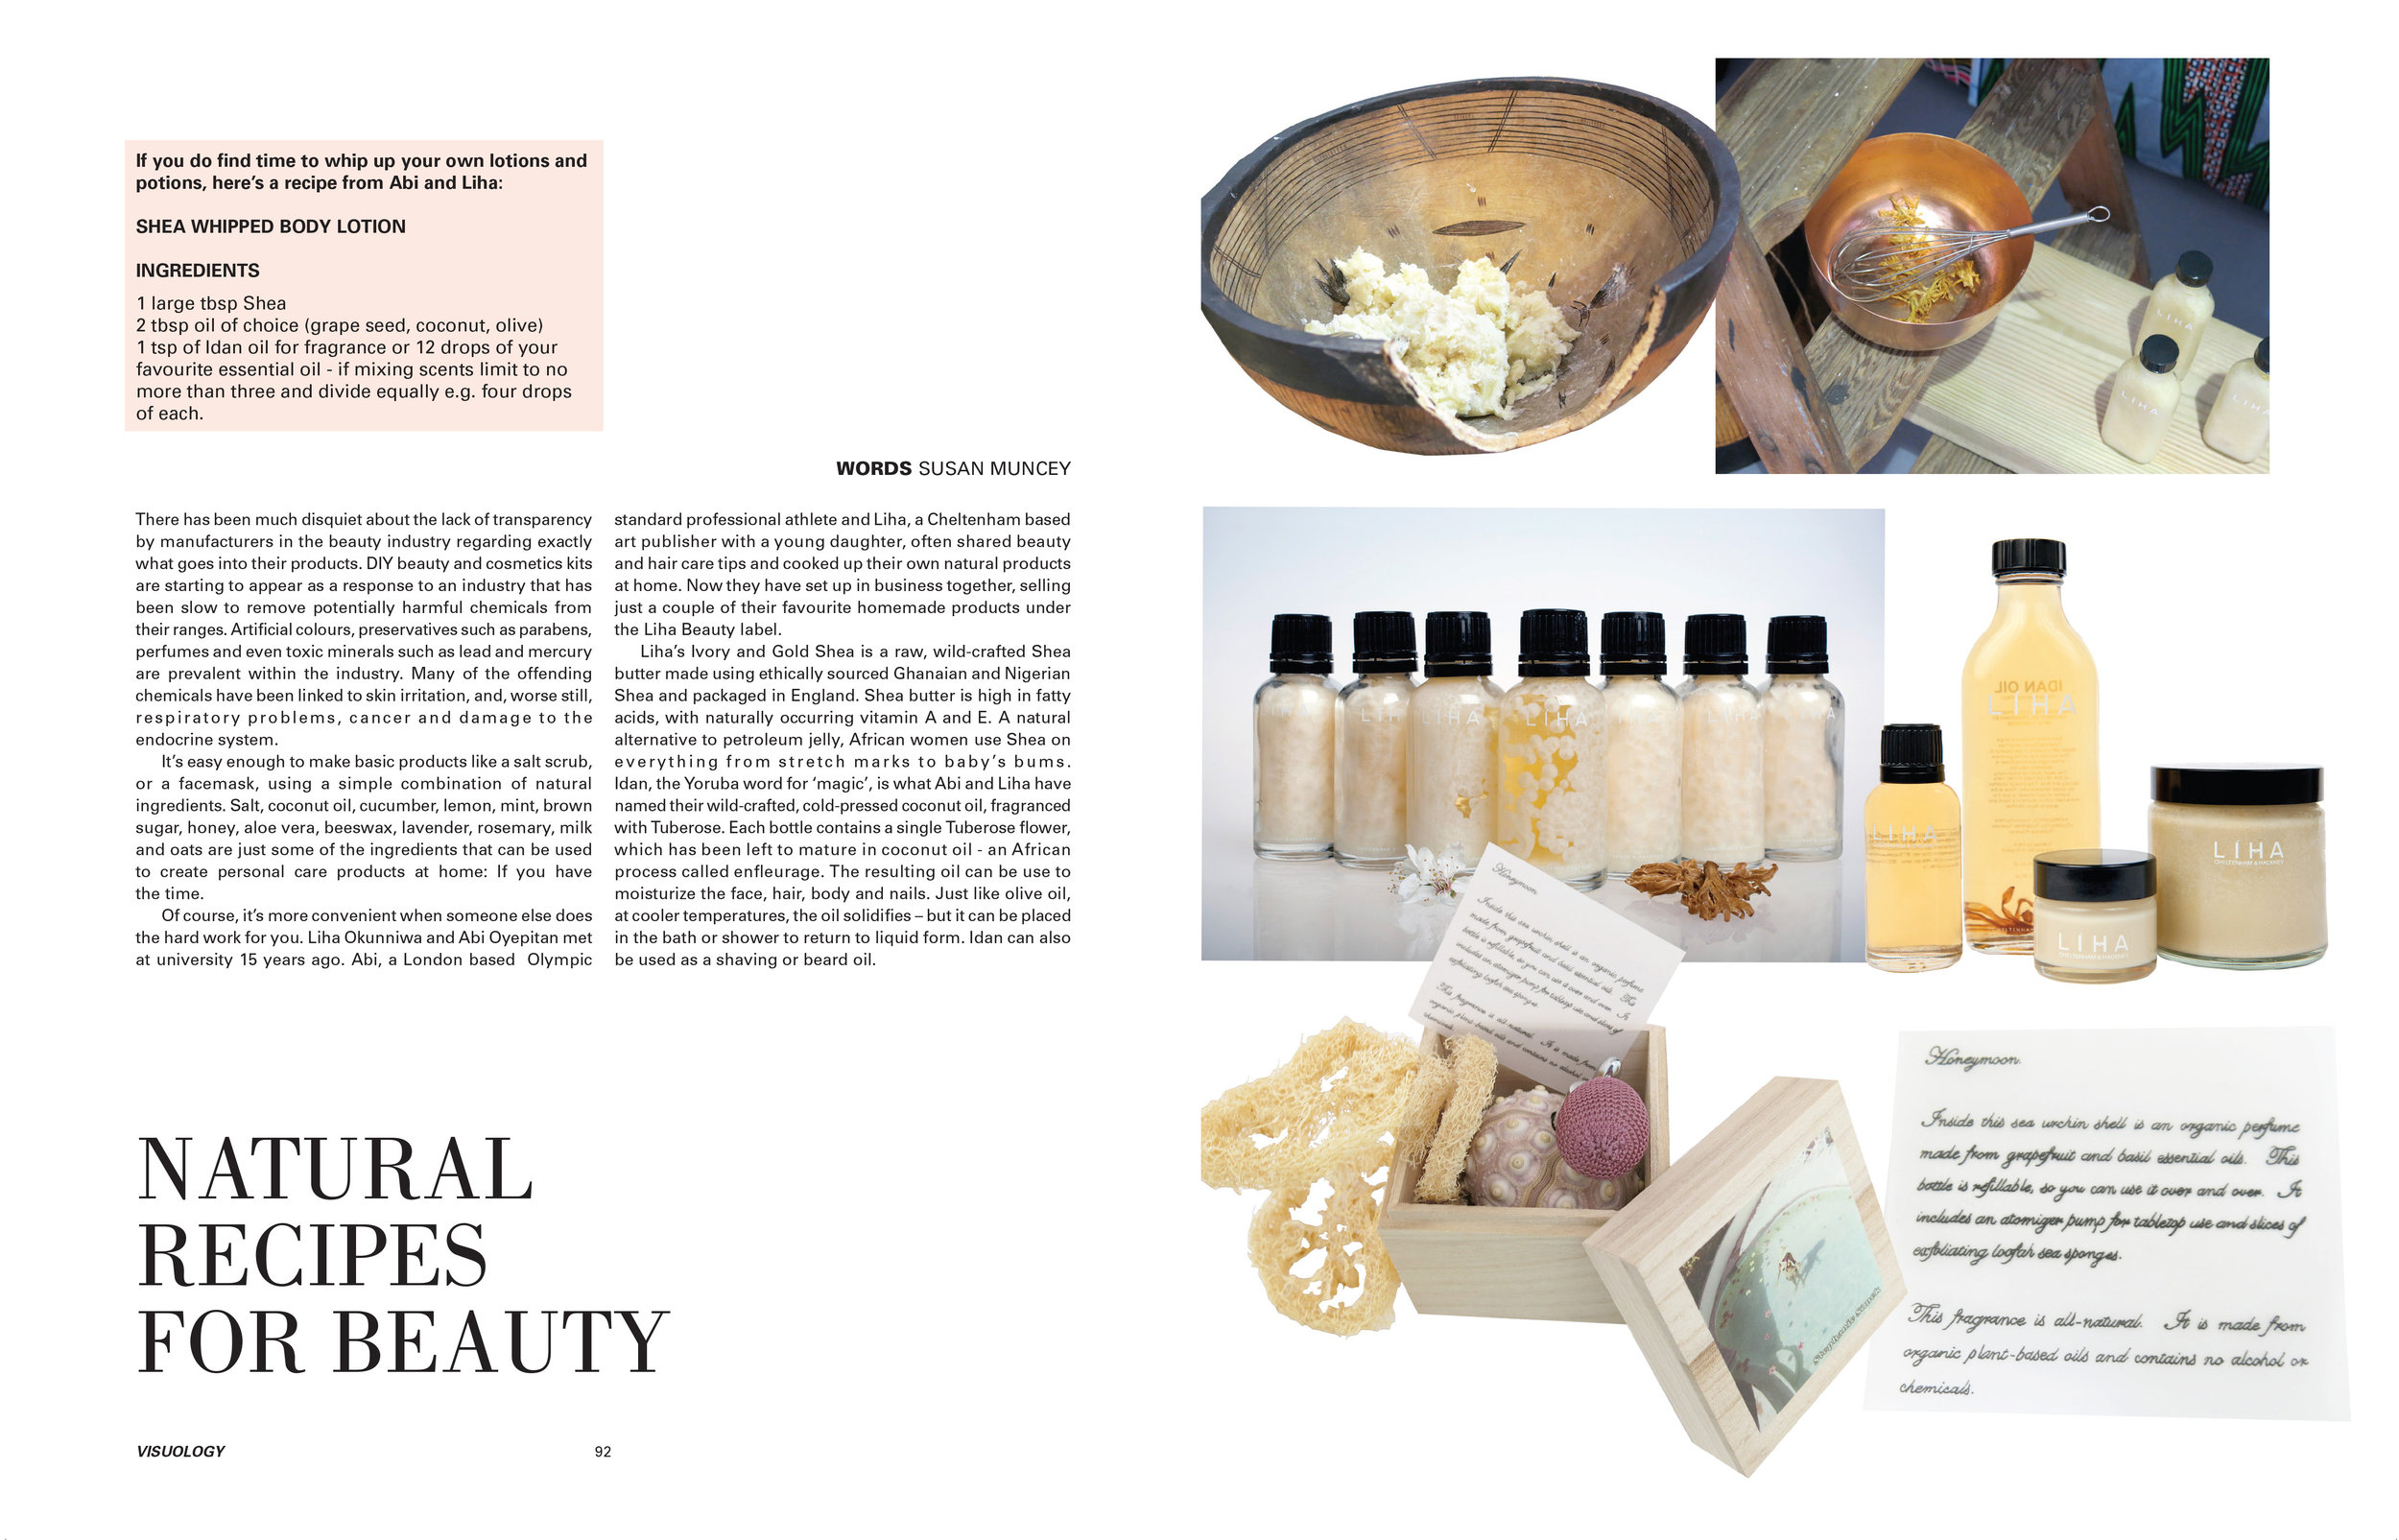 Sustainable Beauty - Handmade, eco-friendly and natural bath, body and wellbeing products